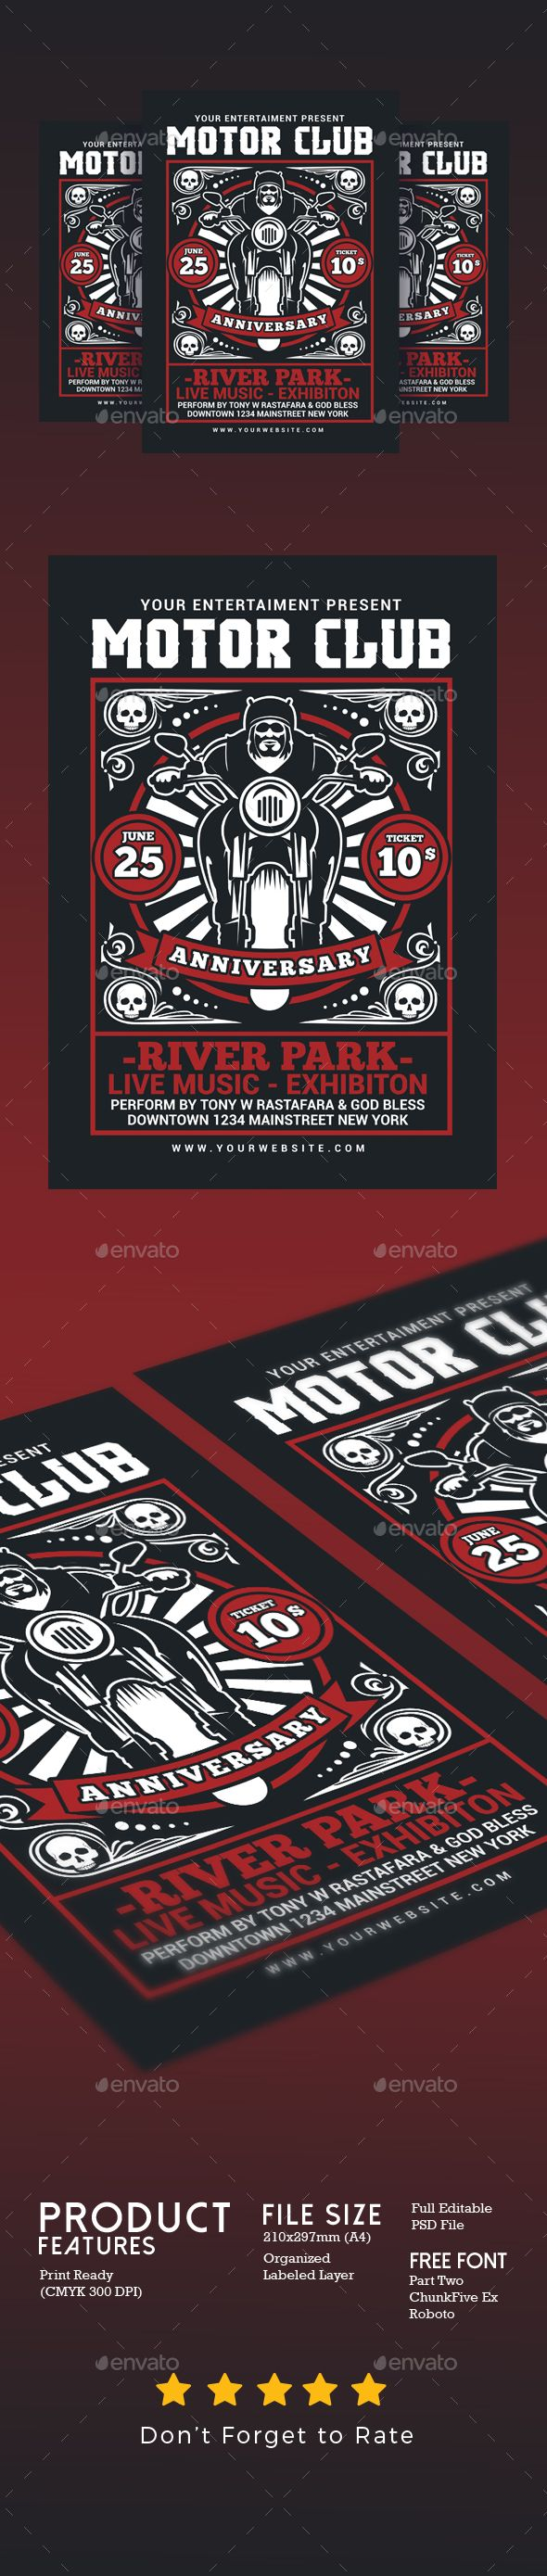 Motorcycle Club Event Flyer Pinterest Event Flyers Motorcycle